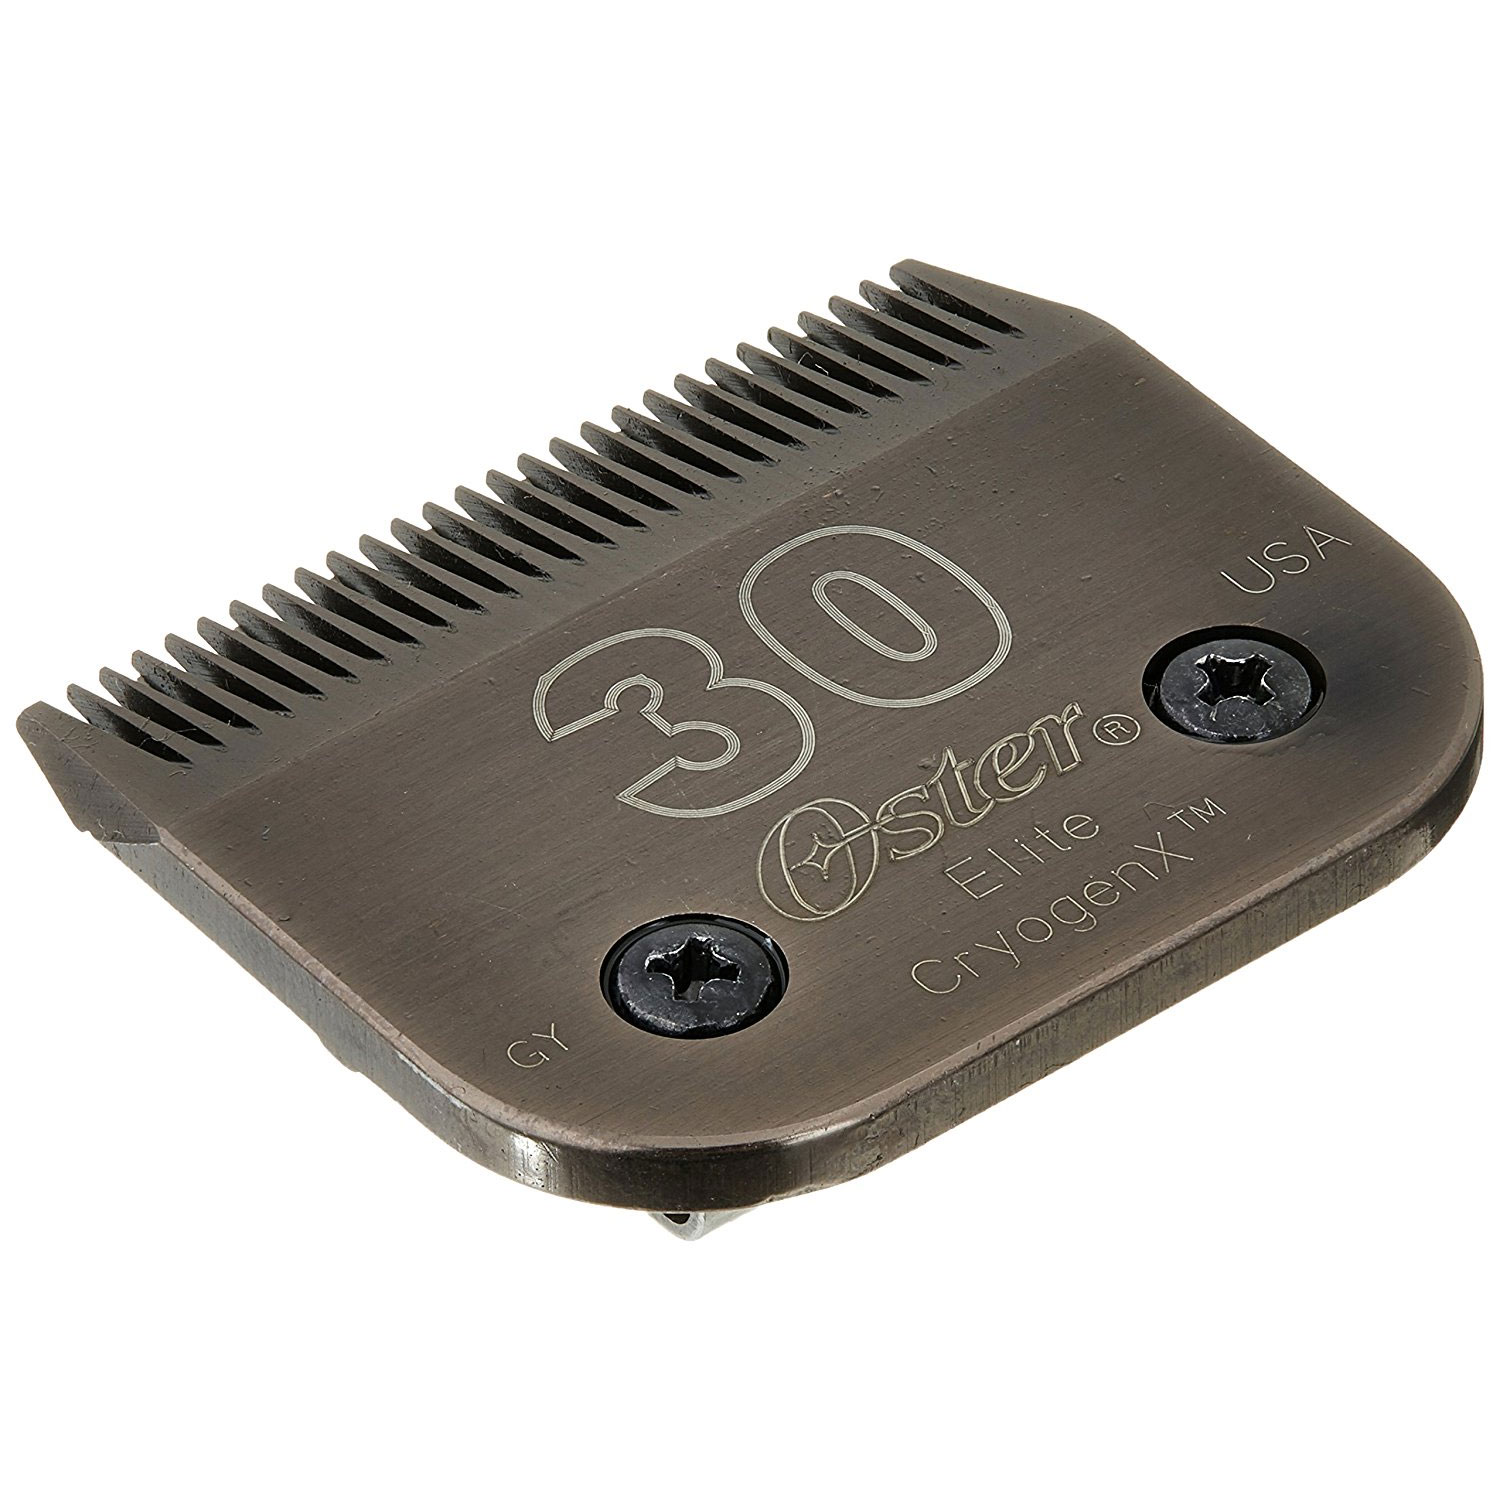 Image of Oster Elite CryogenX Professional Animal Clipper Blade #30 for A5 - 78919-556